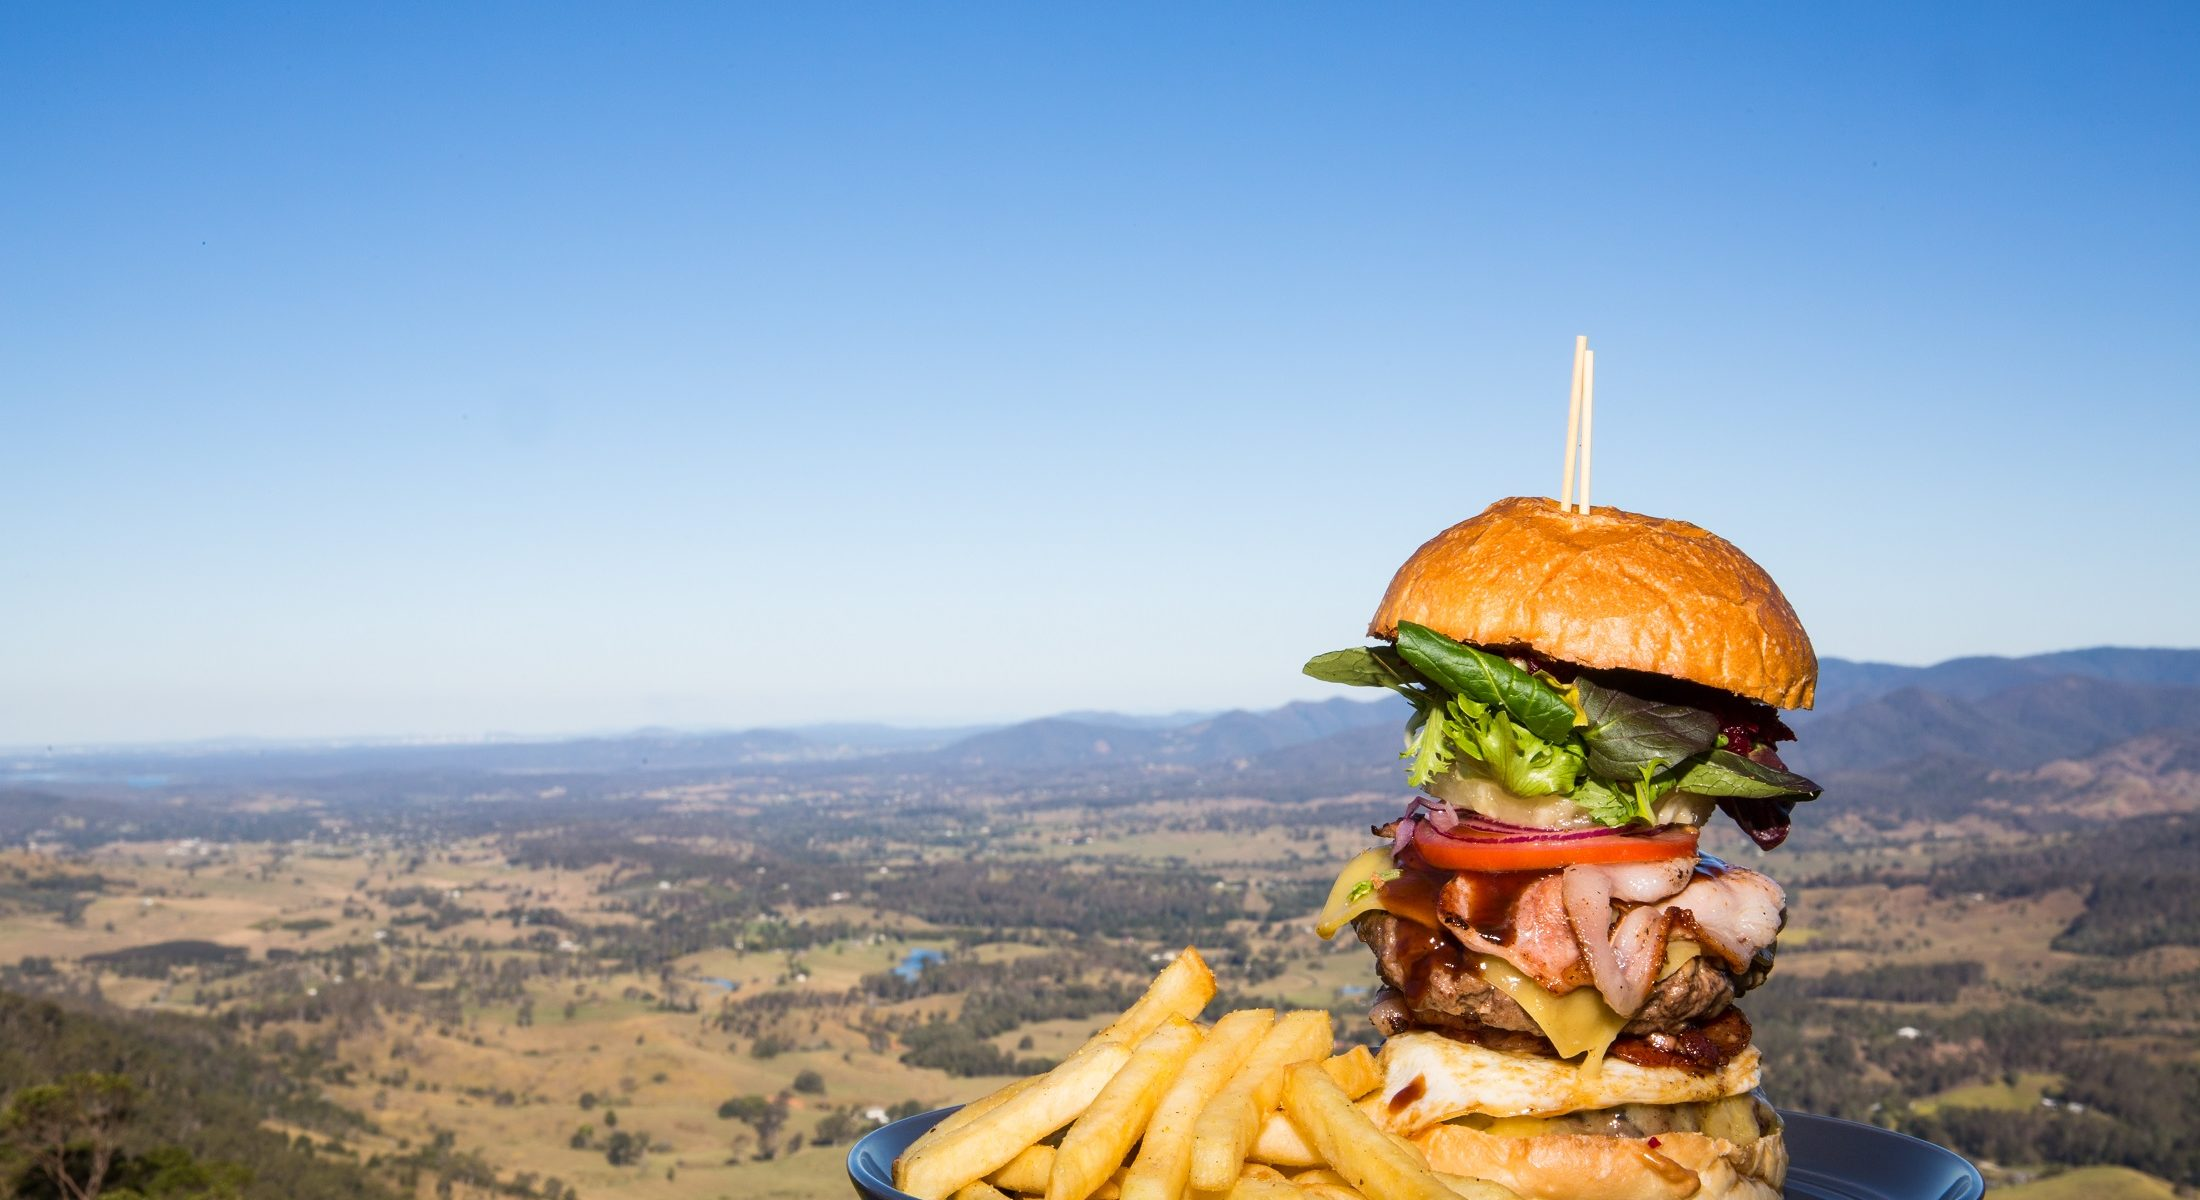 Pitstop At Mt Mee Cafe Tasty Food Burgers Motorcycles Cars Bikes Moreton Bay Region